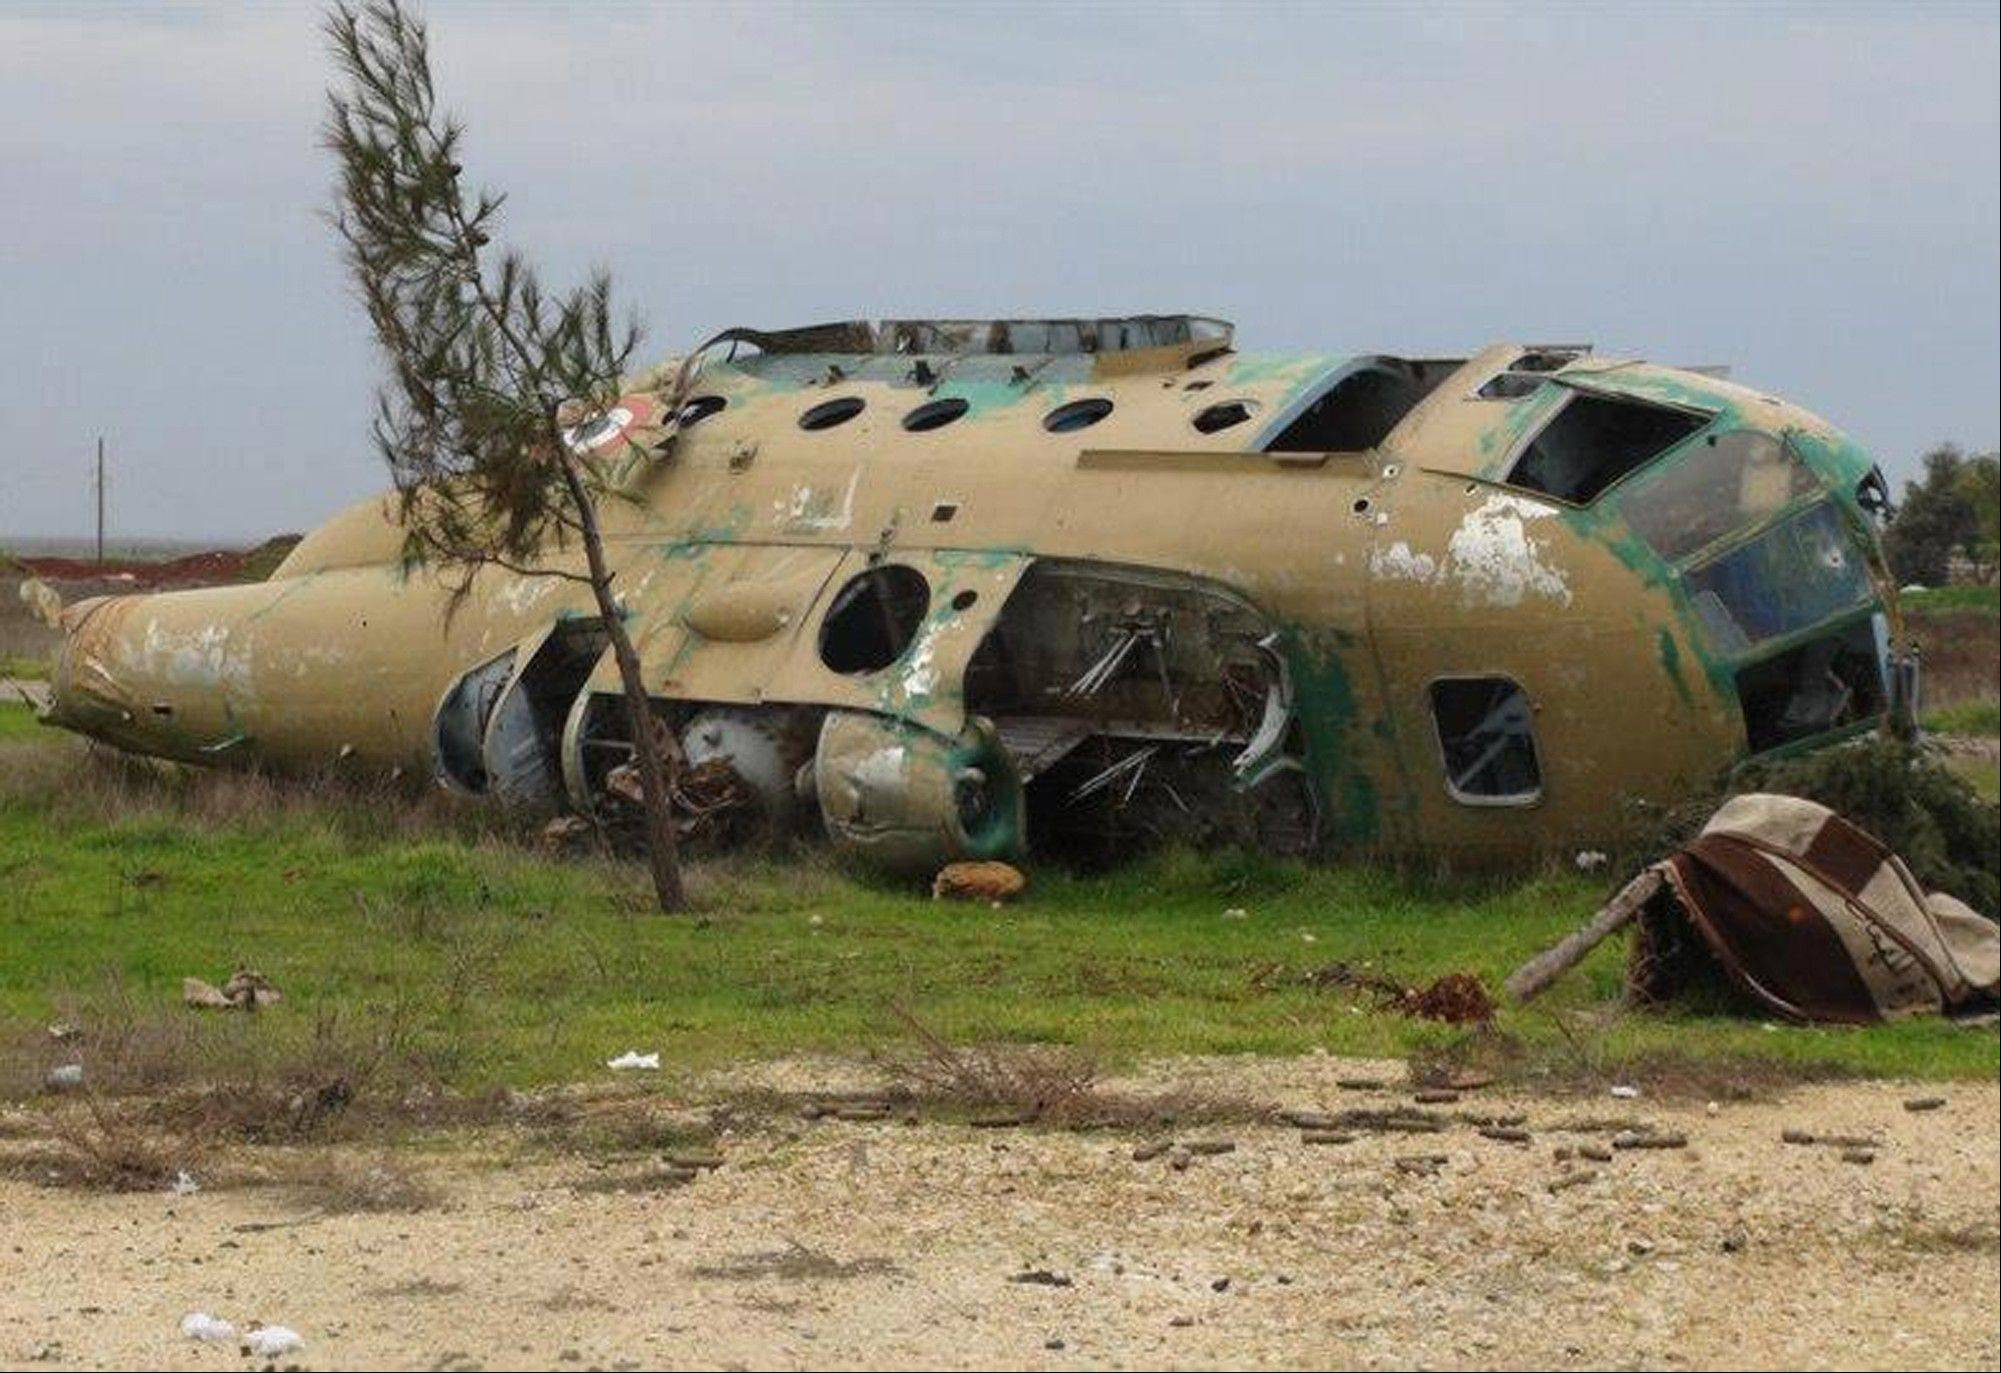 This citizen journalism image provided by Edlib News Network, ENN, which has been authenticated based on its contents, shows a damaged Syrian air force helicopter at Taftanaz air base that was captured by the rebels on Friday.